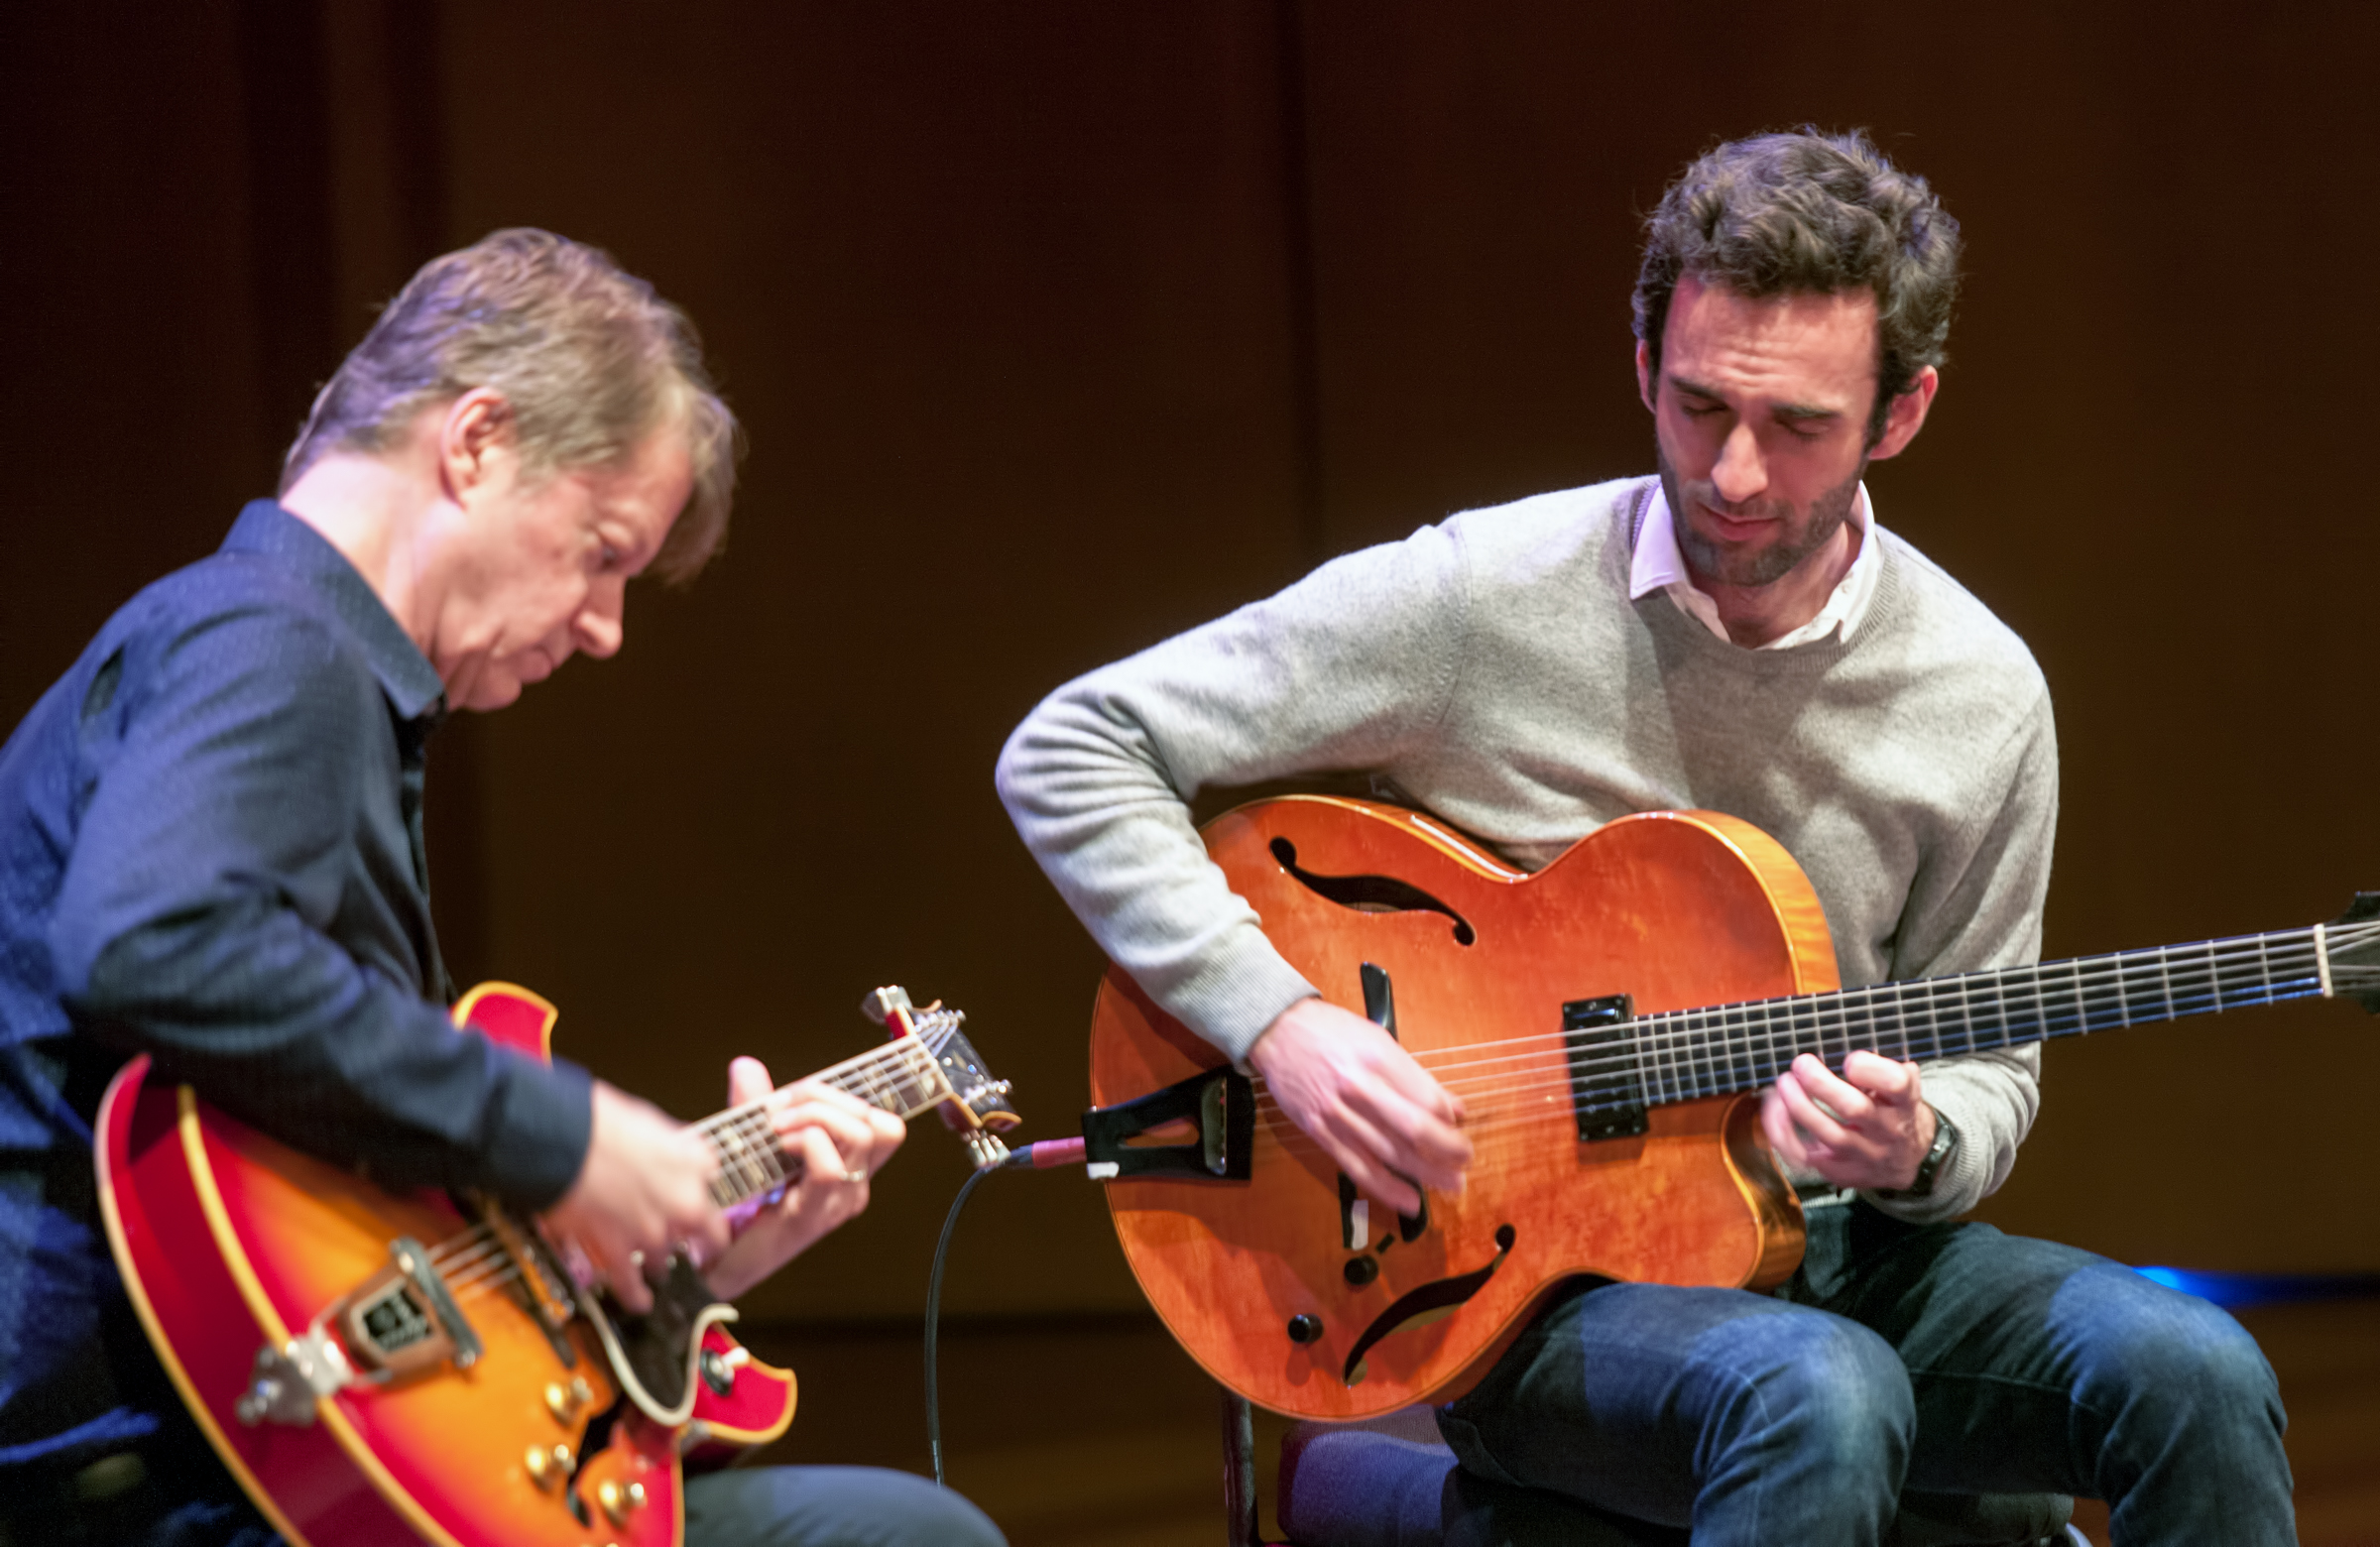 Nels Cline And Julian Lage At The Musical Instruments Museum (mim) In Phoenix